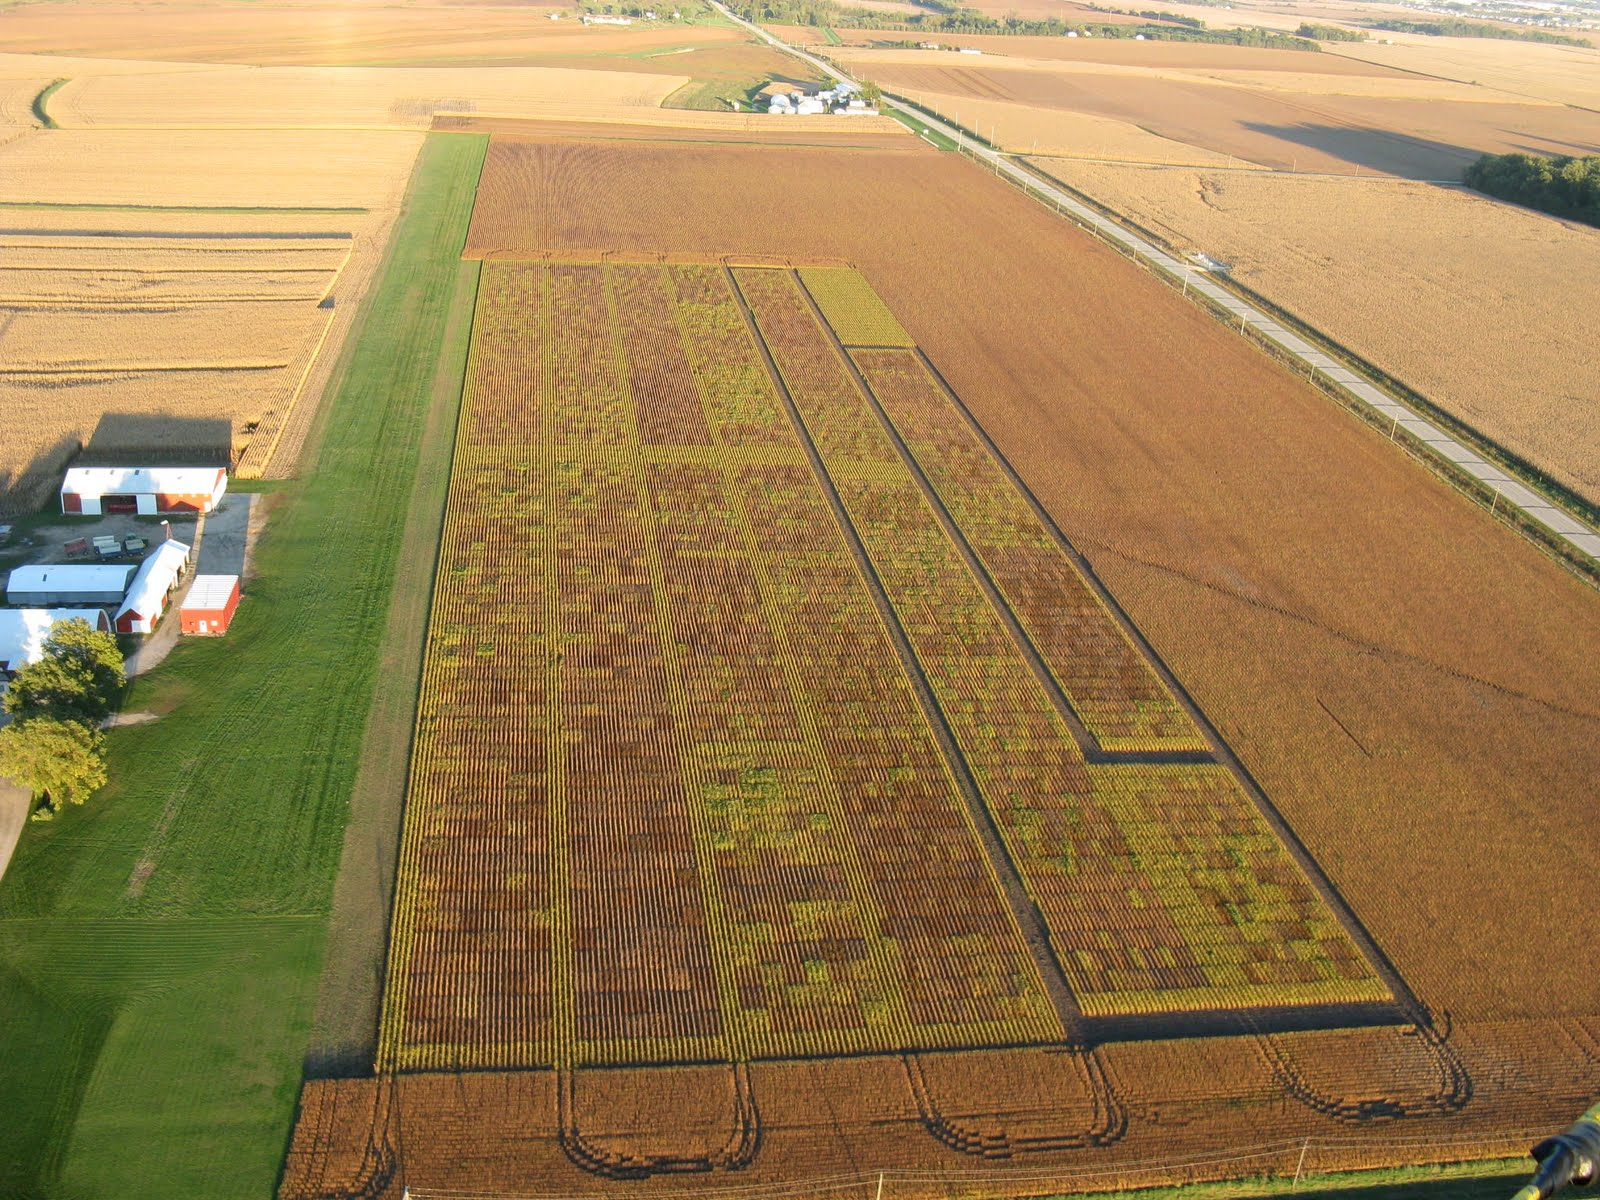 Photo: Ultralight runway next to colorful soybean test plots